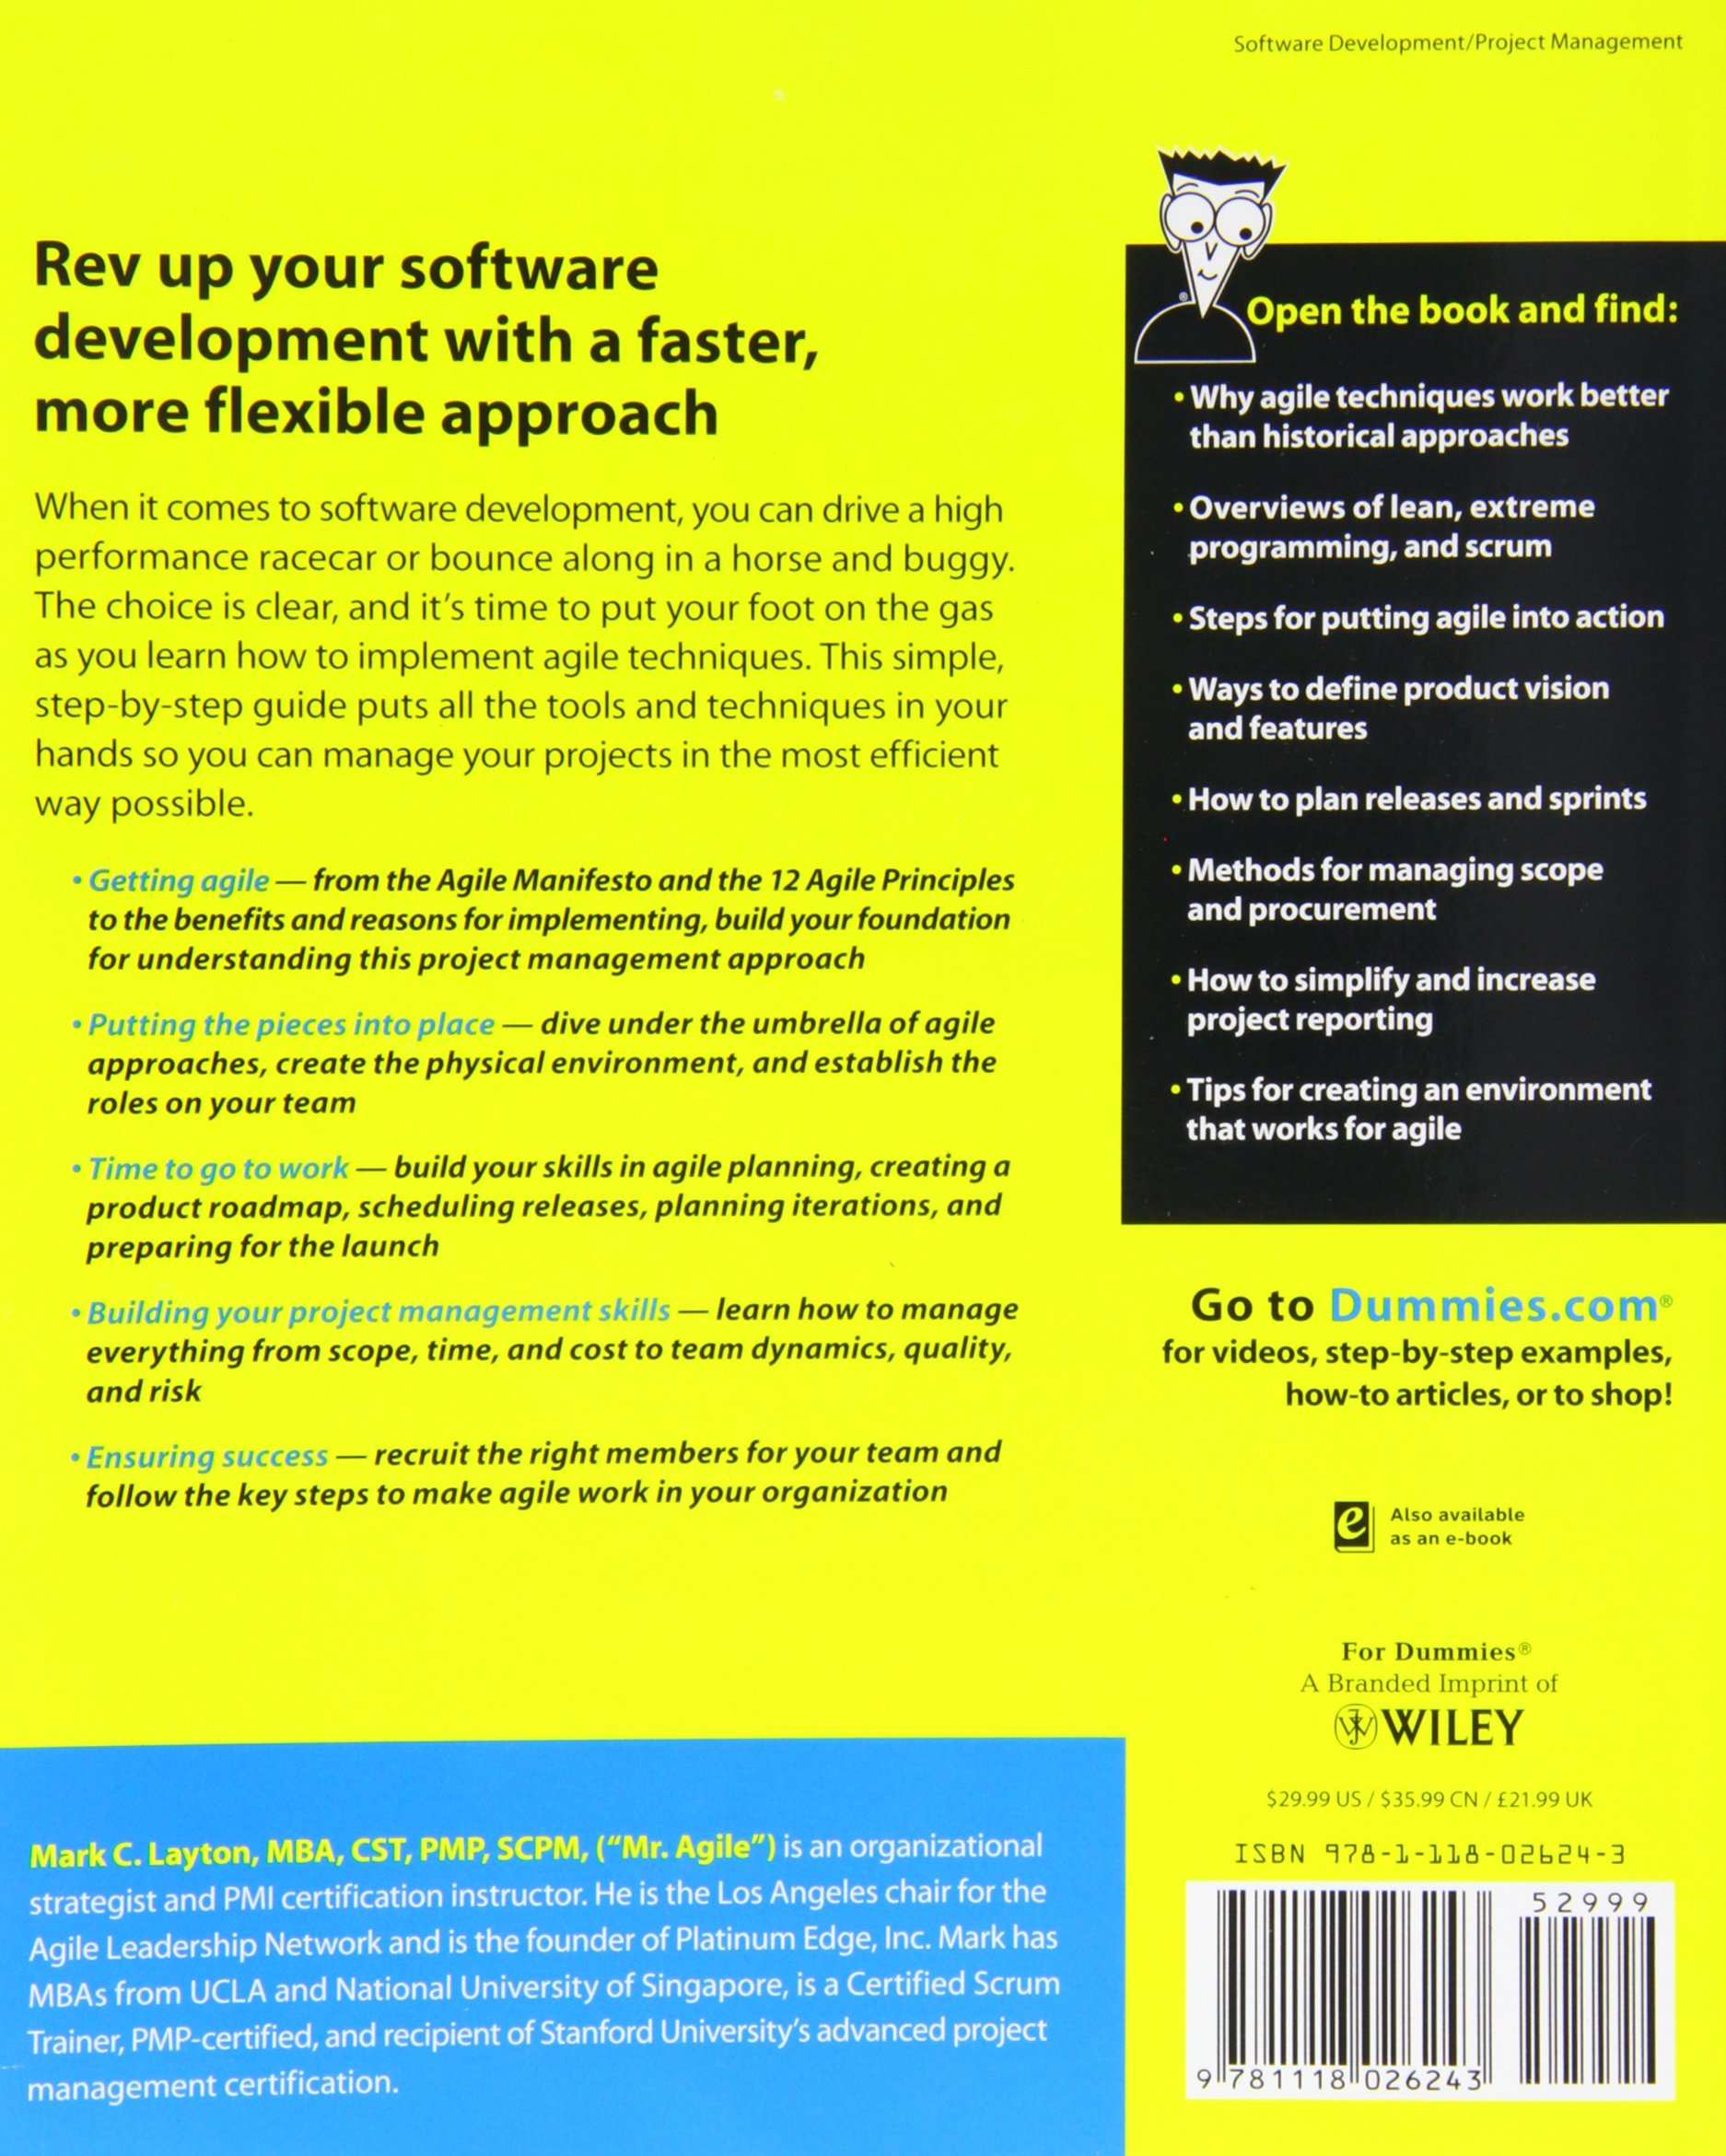 Agile Project Management For Dummies Amazon Mark C Layton